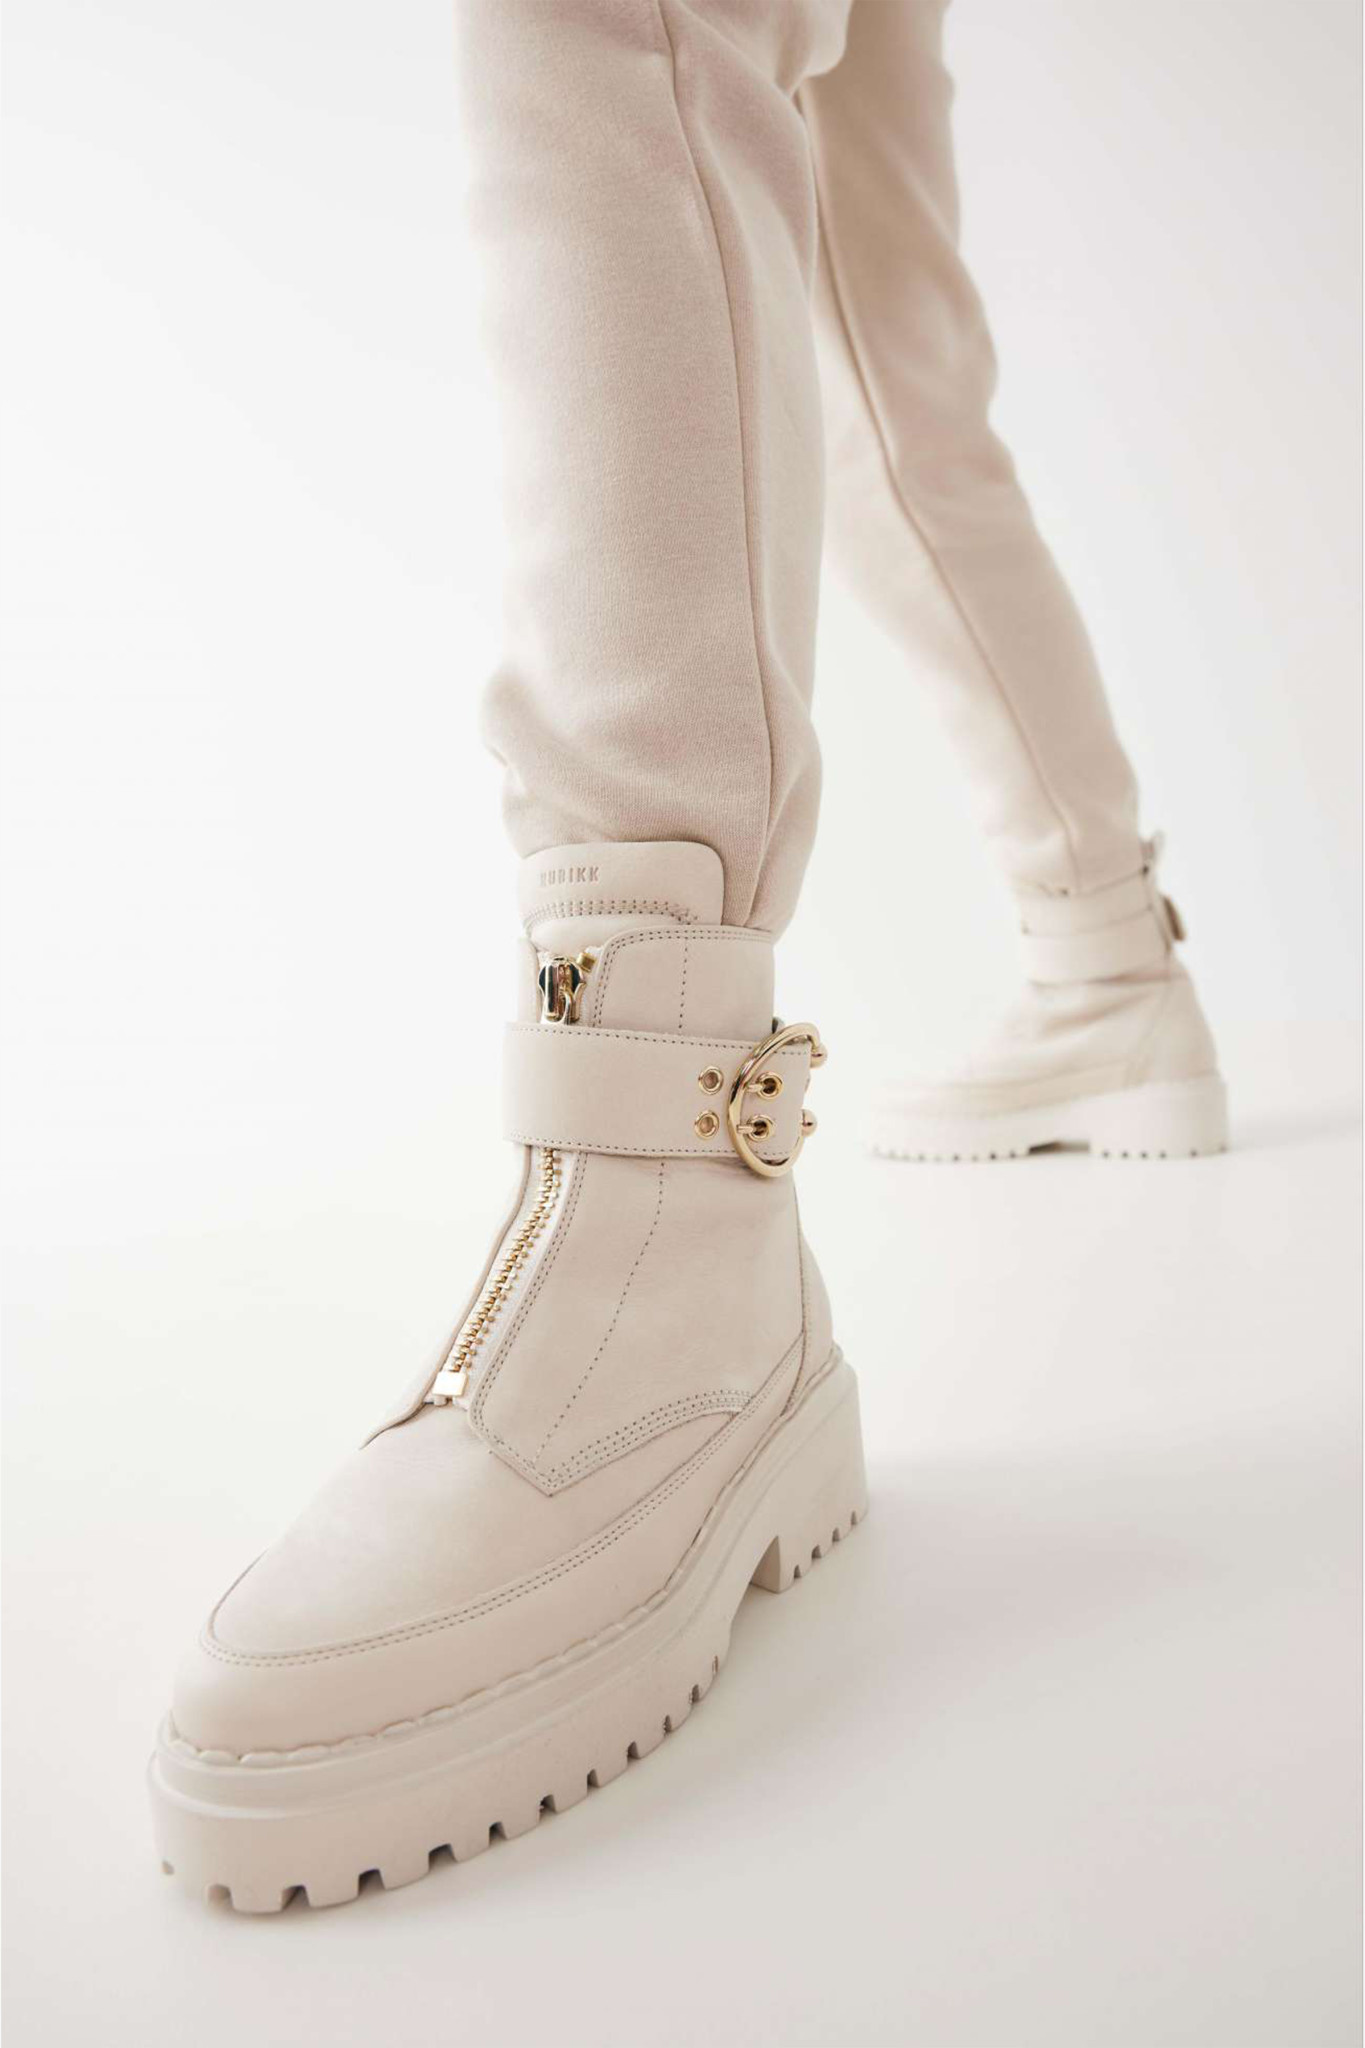 Fae Ray Boots - Desert Leather-2